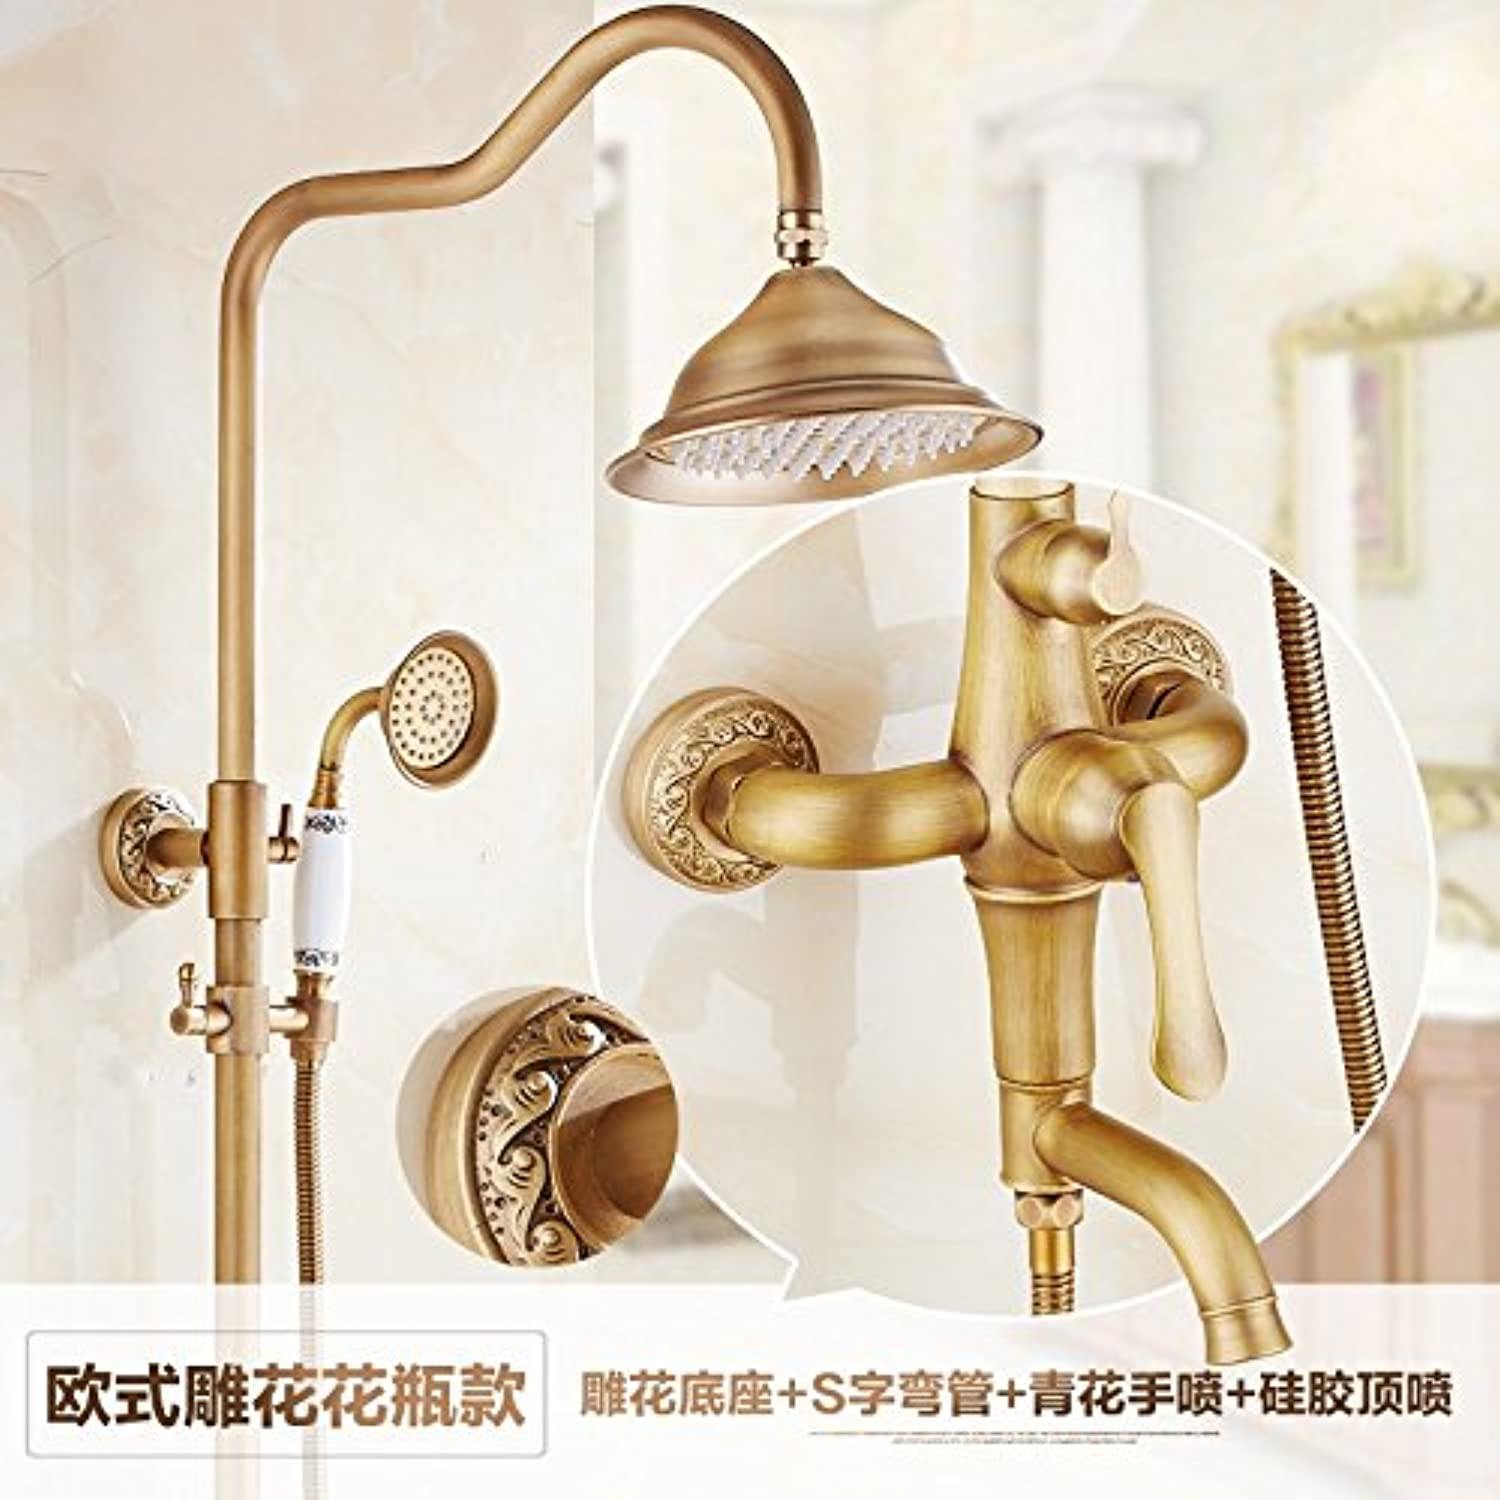 Hlluya Professional Sink Mixer Tap Kitchen Faucet Antique shower kit full copper Bathroom Wall mounted lift shower large shower bath faucet,I